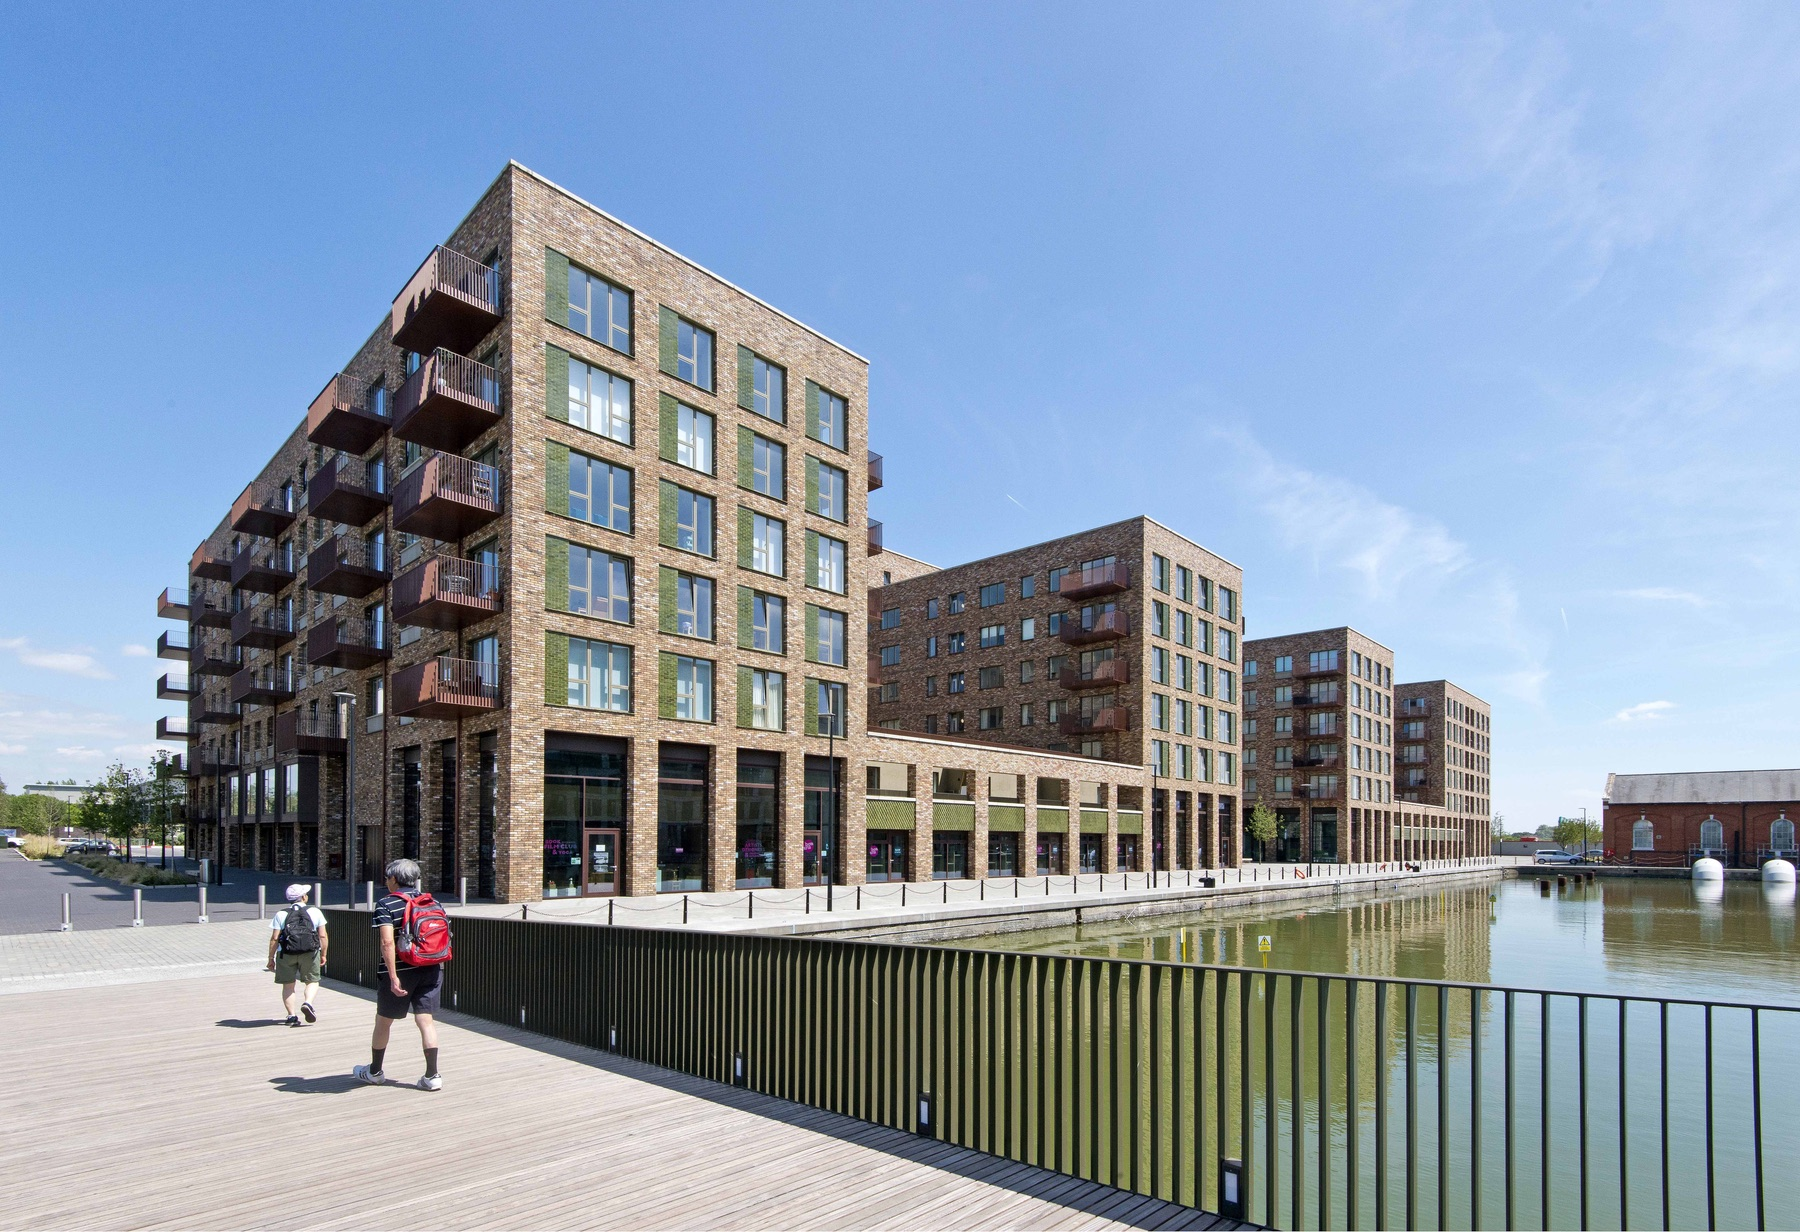 Royal Albert Wharf - Great Eastern Quays Street View